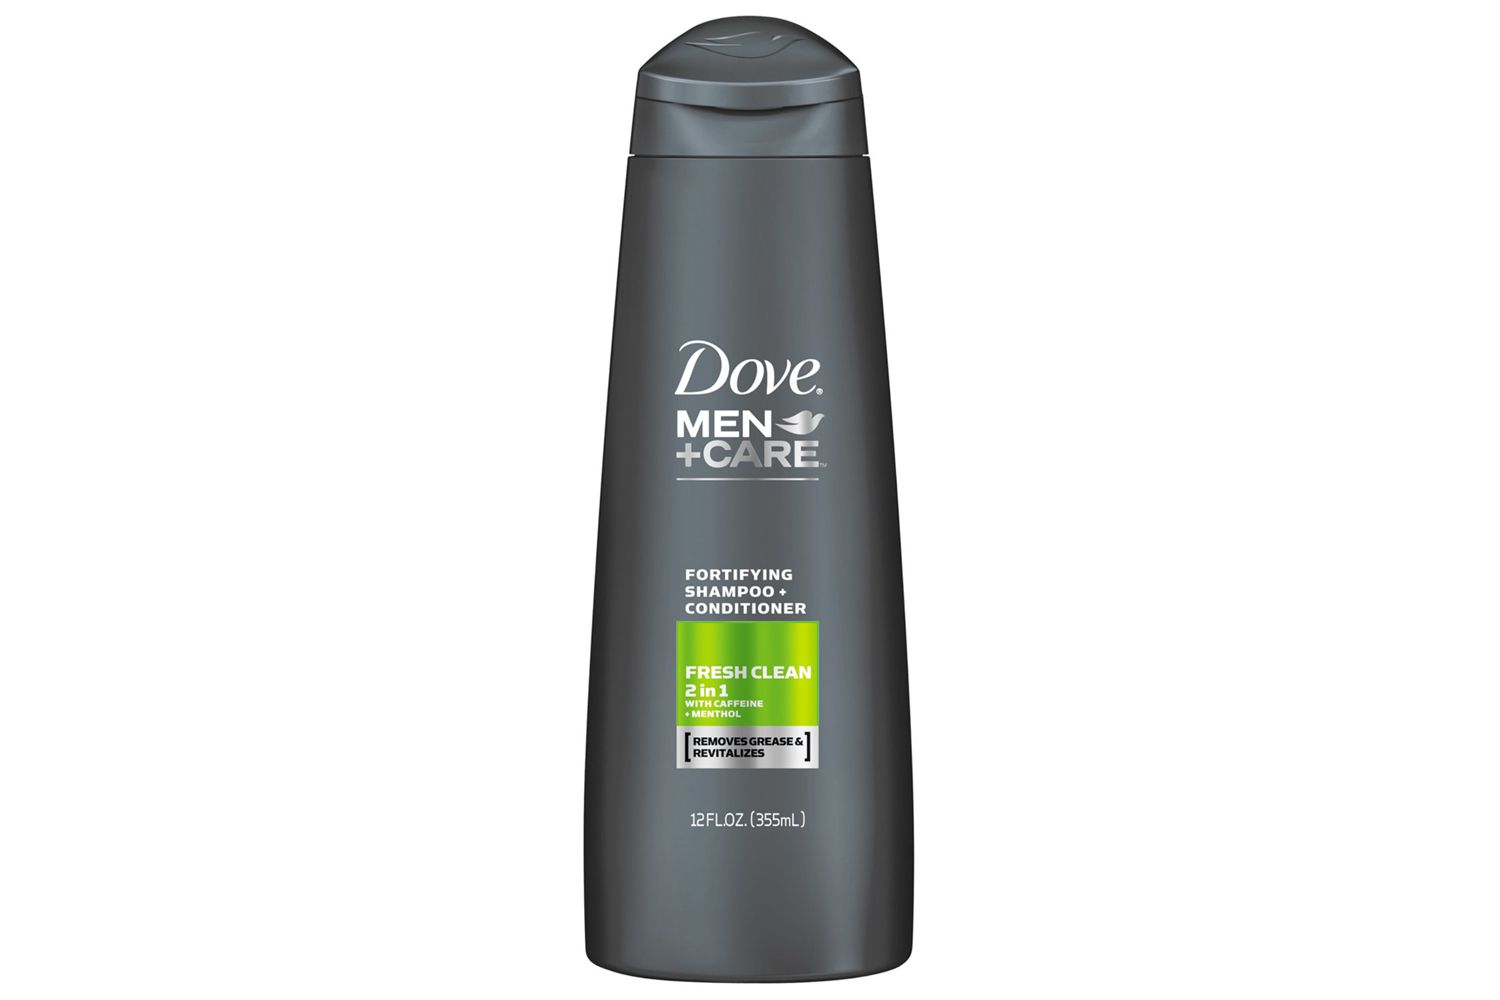 Supermarket Shampoo That Works: Review of Dove Men+Care